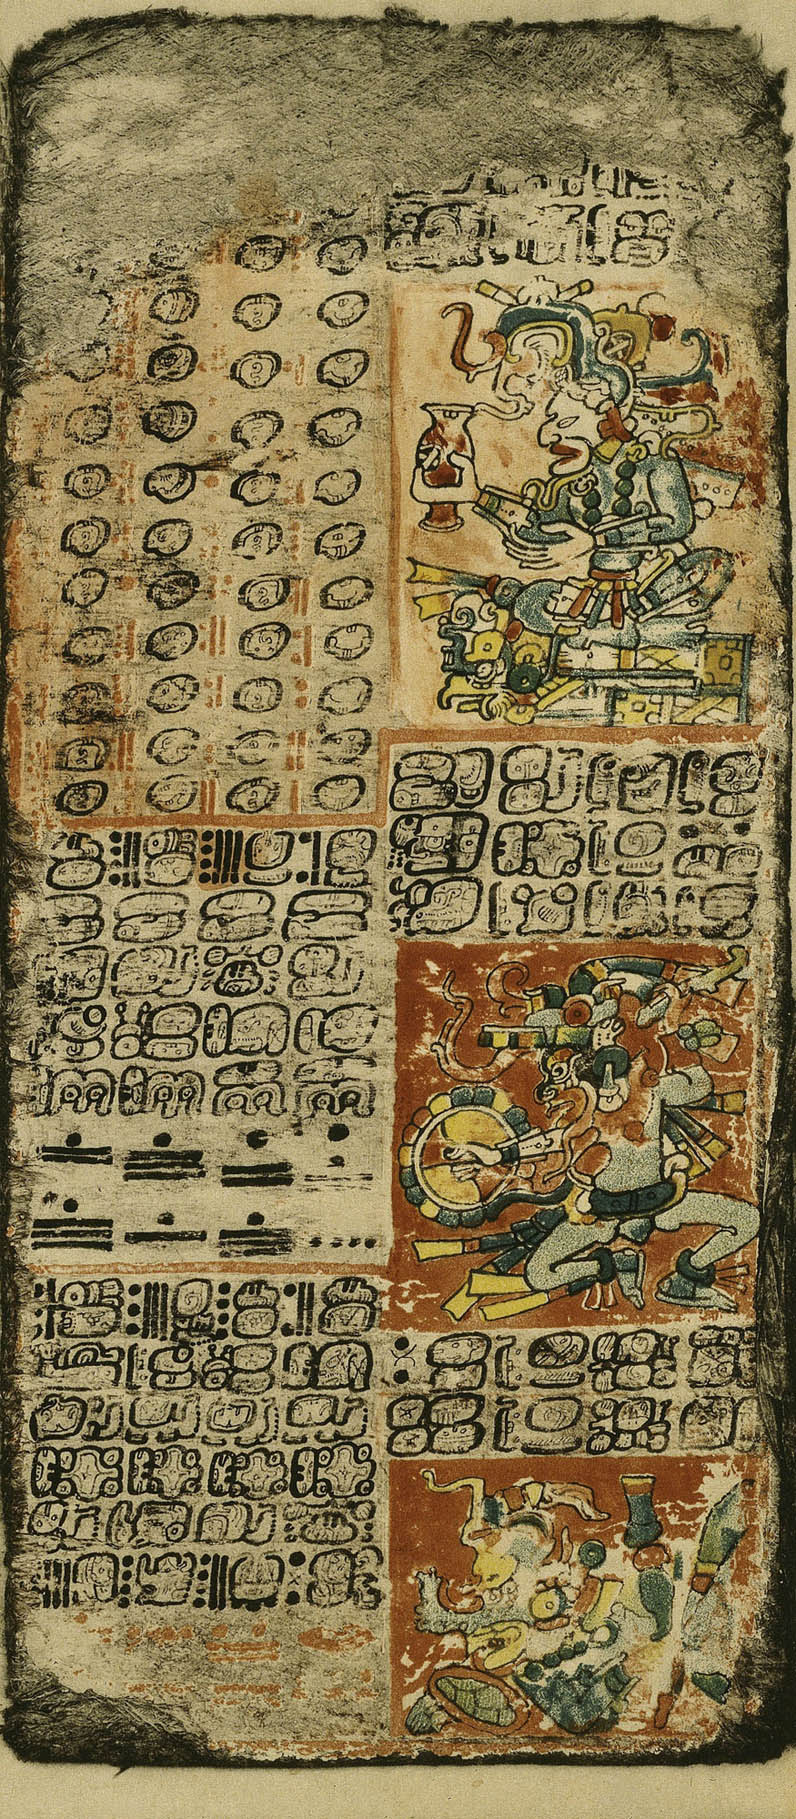 Venus Table from the Dresden Codex